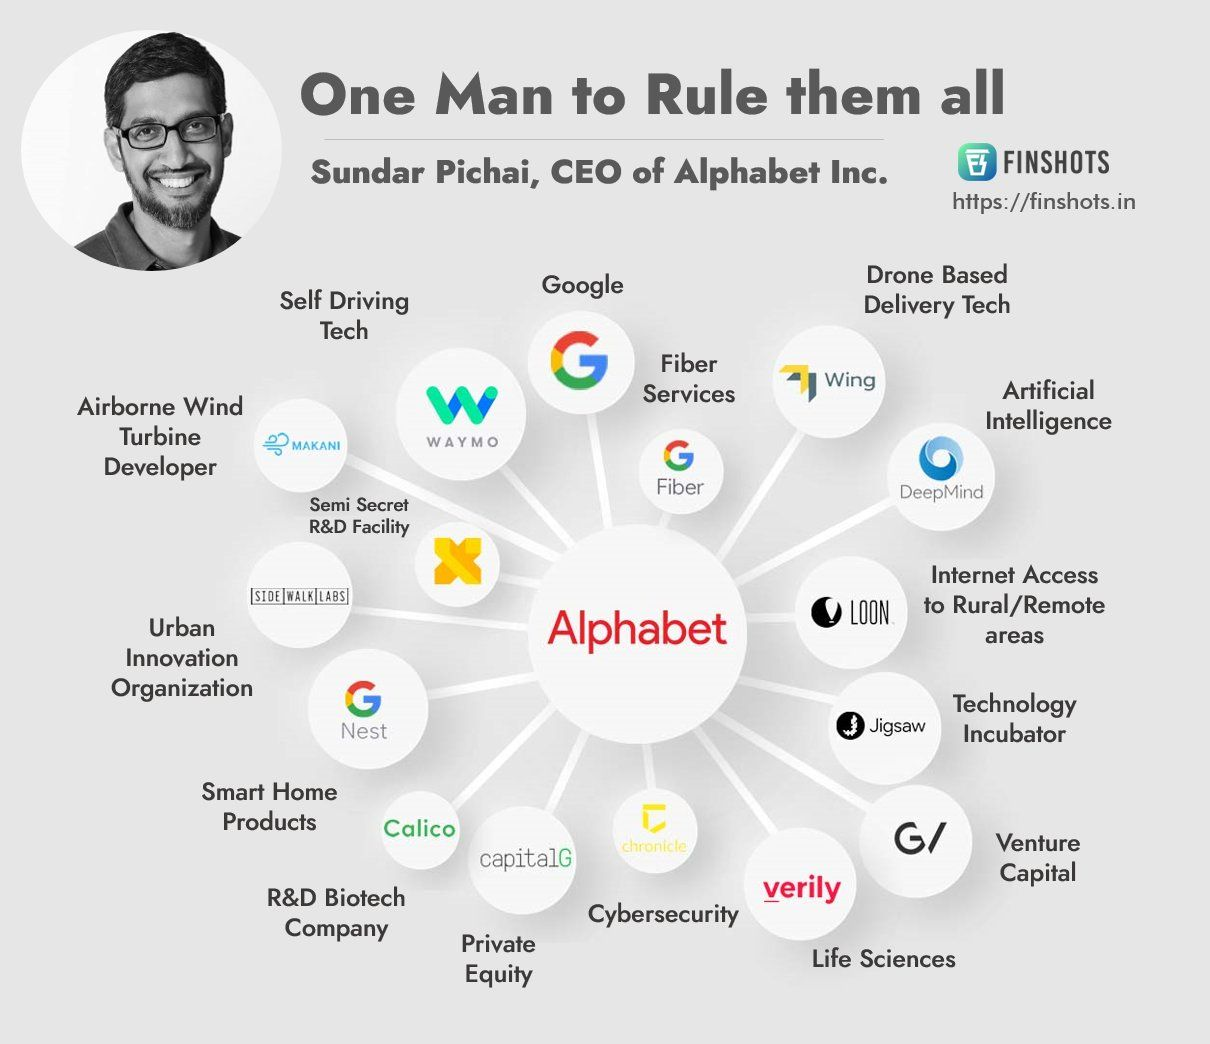 One man to rule them all- Sundar Pichai, CEO of Alphabet Inc.